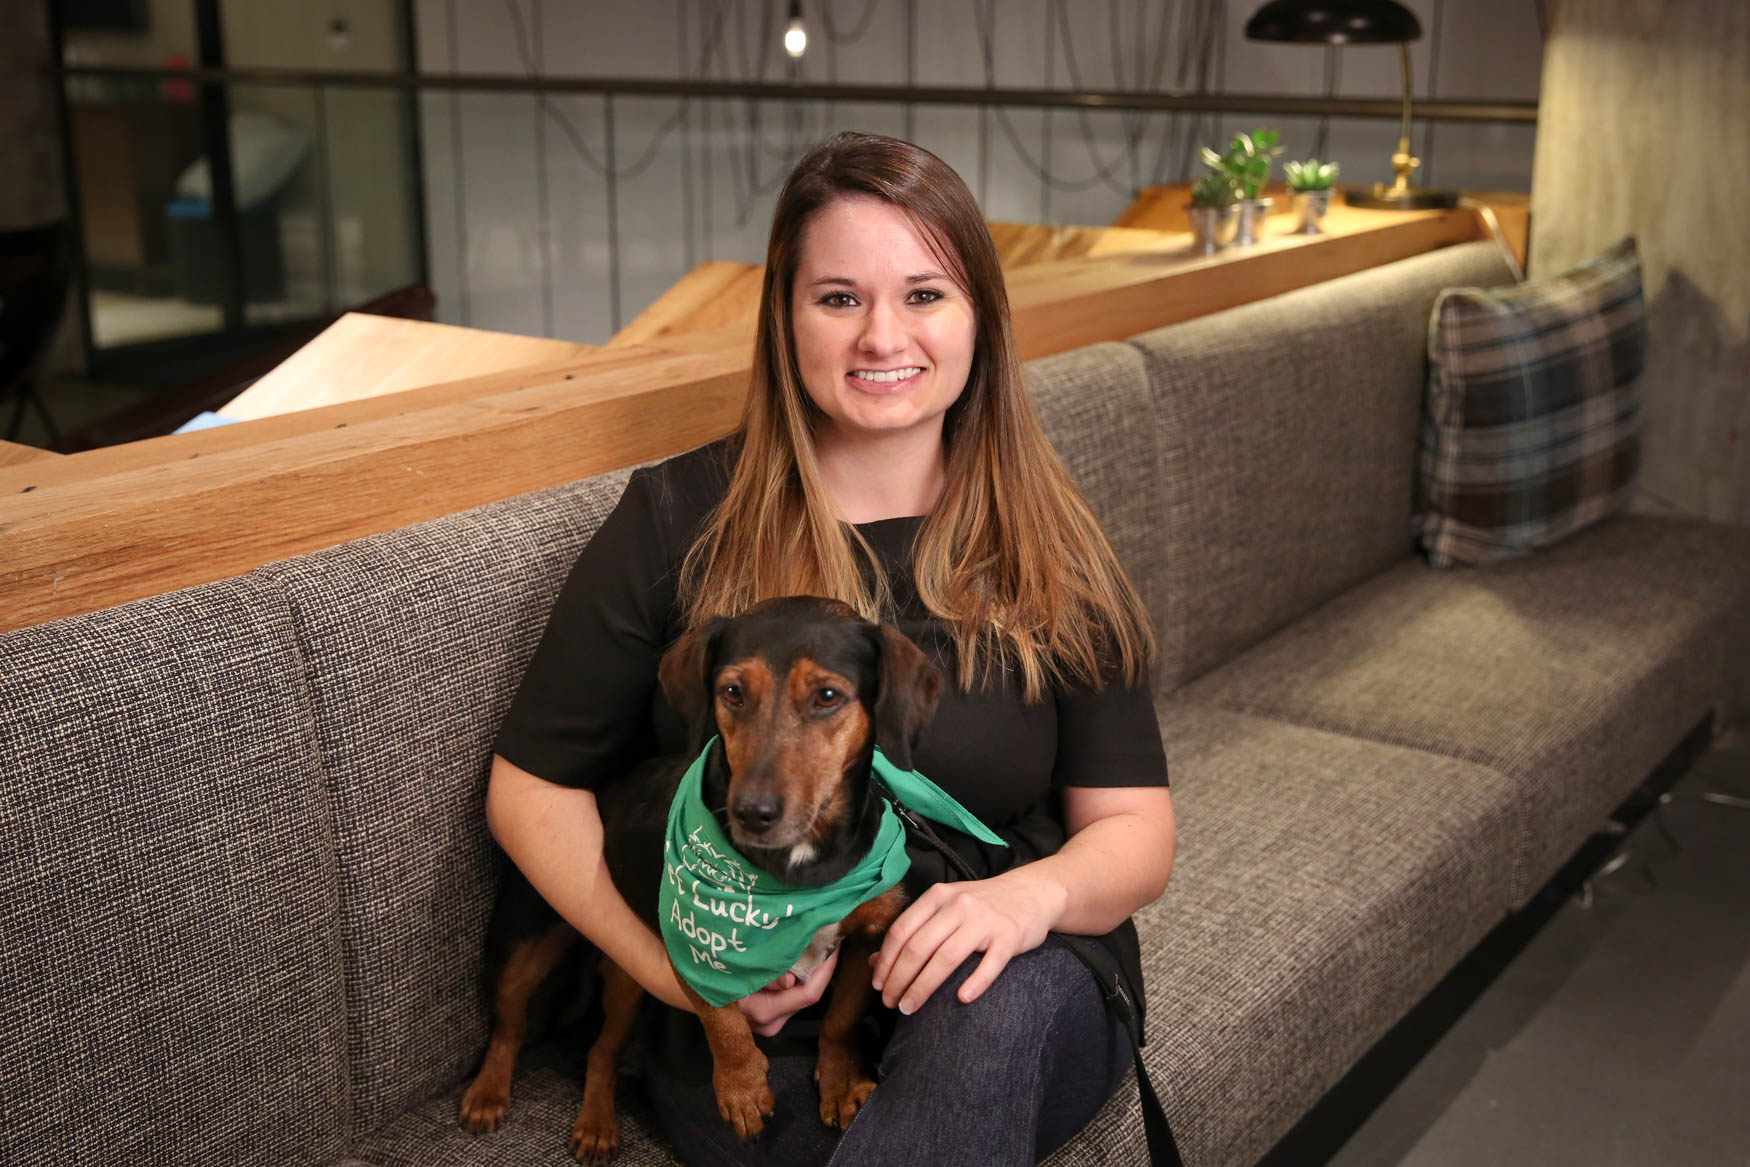 Brittany is originally from Charleston, SC and currently works as an analyst. Her hobbies include traveling, plying with her dog and getting lost. Learn more about on Brittany our Facebook page. Photo location: Moxy Washington, D.C. Downtown (Image: Amanda Andrade-Rhoades/ DC Refined)